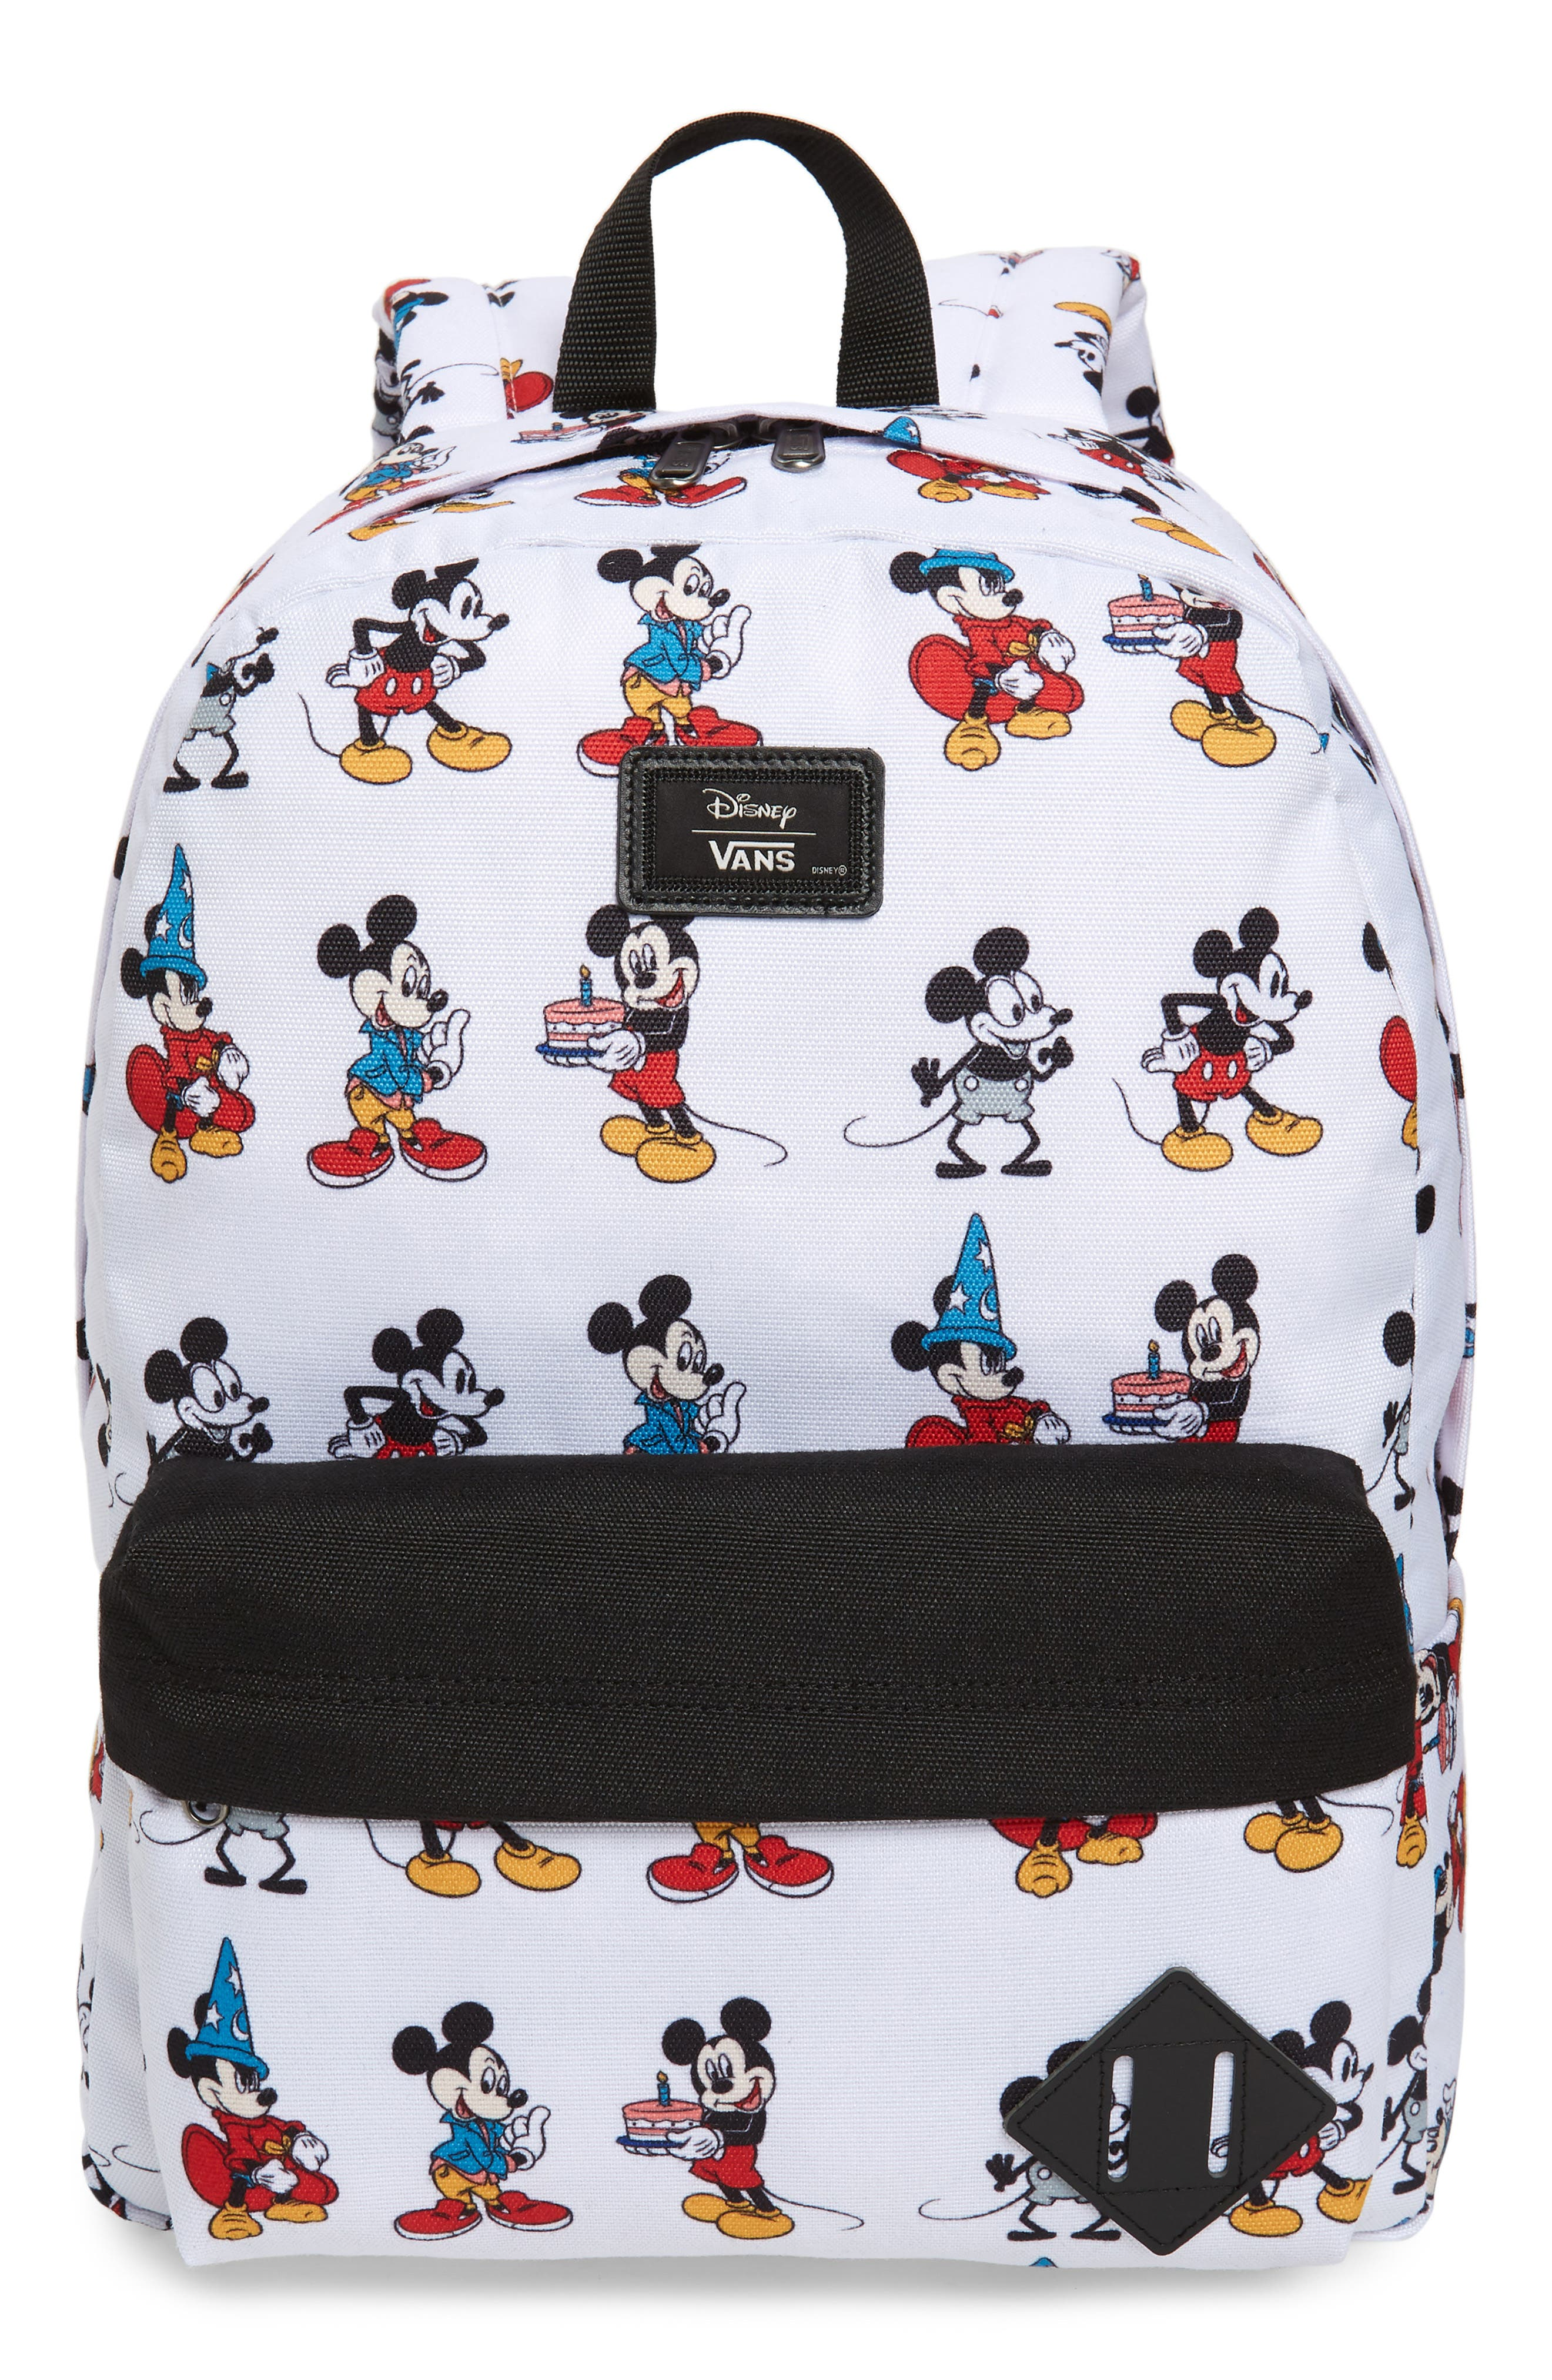 x Disney Mickey's 90th Anniversary - Mickey Through the Ages Backpack,                             Main thumbnail 1, color,                             WHITE